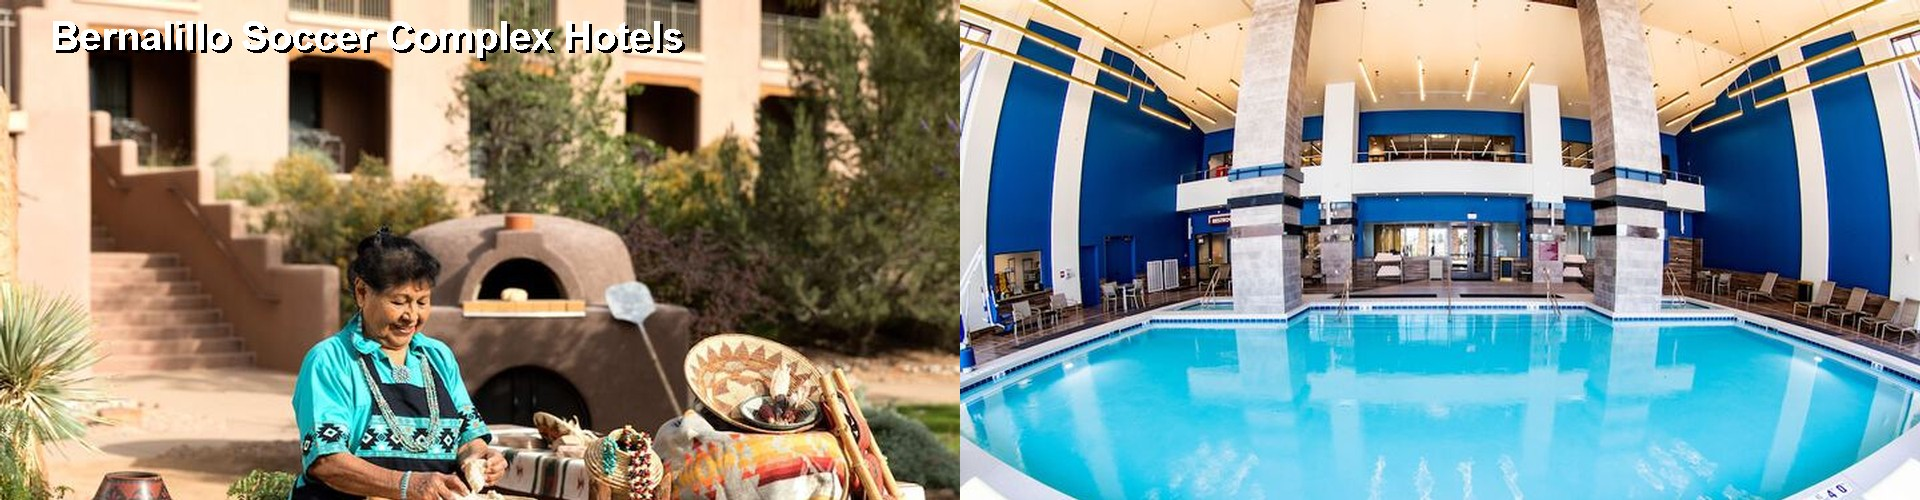 5 Best Hotels near Bernalillo Soccer Complex